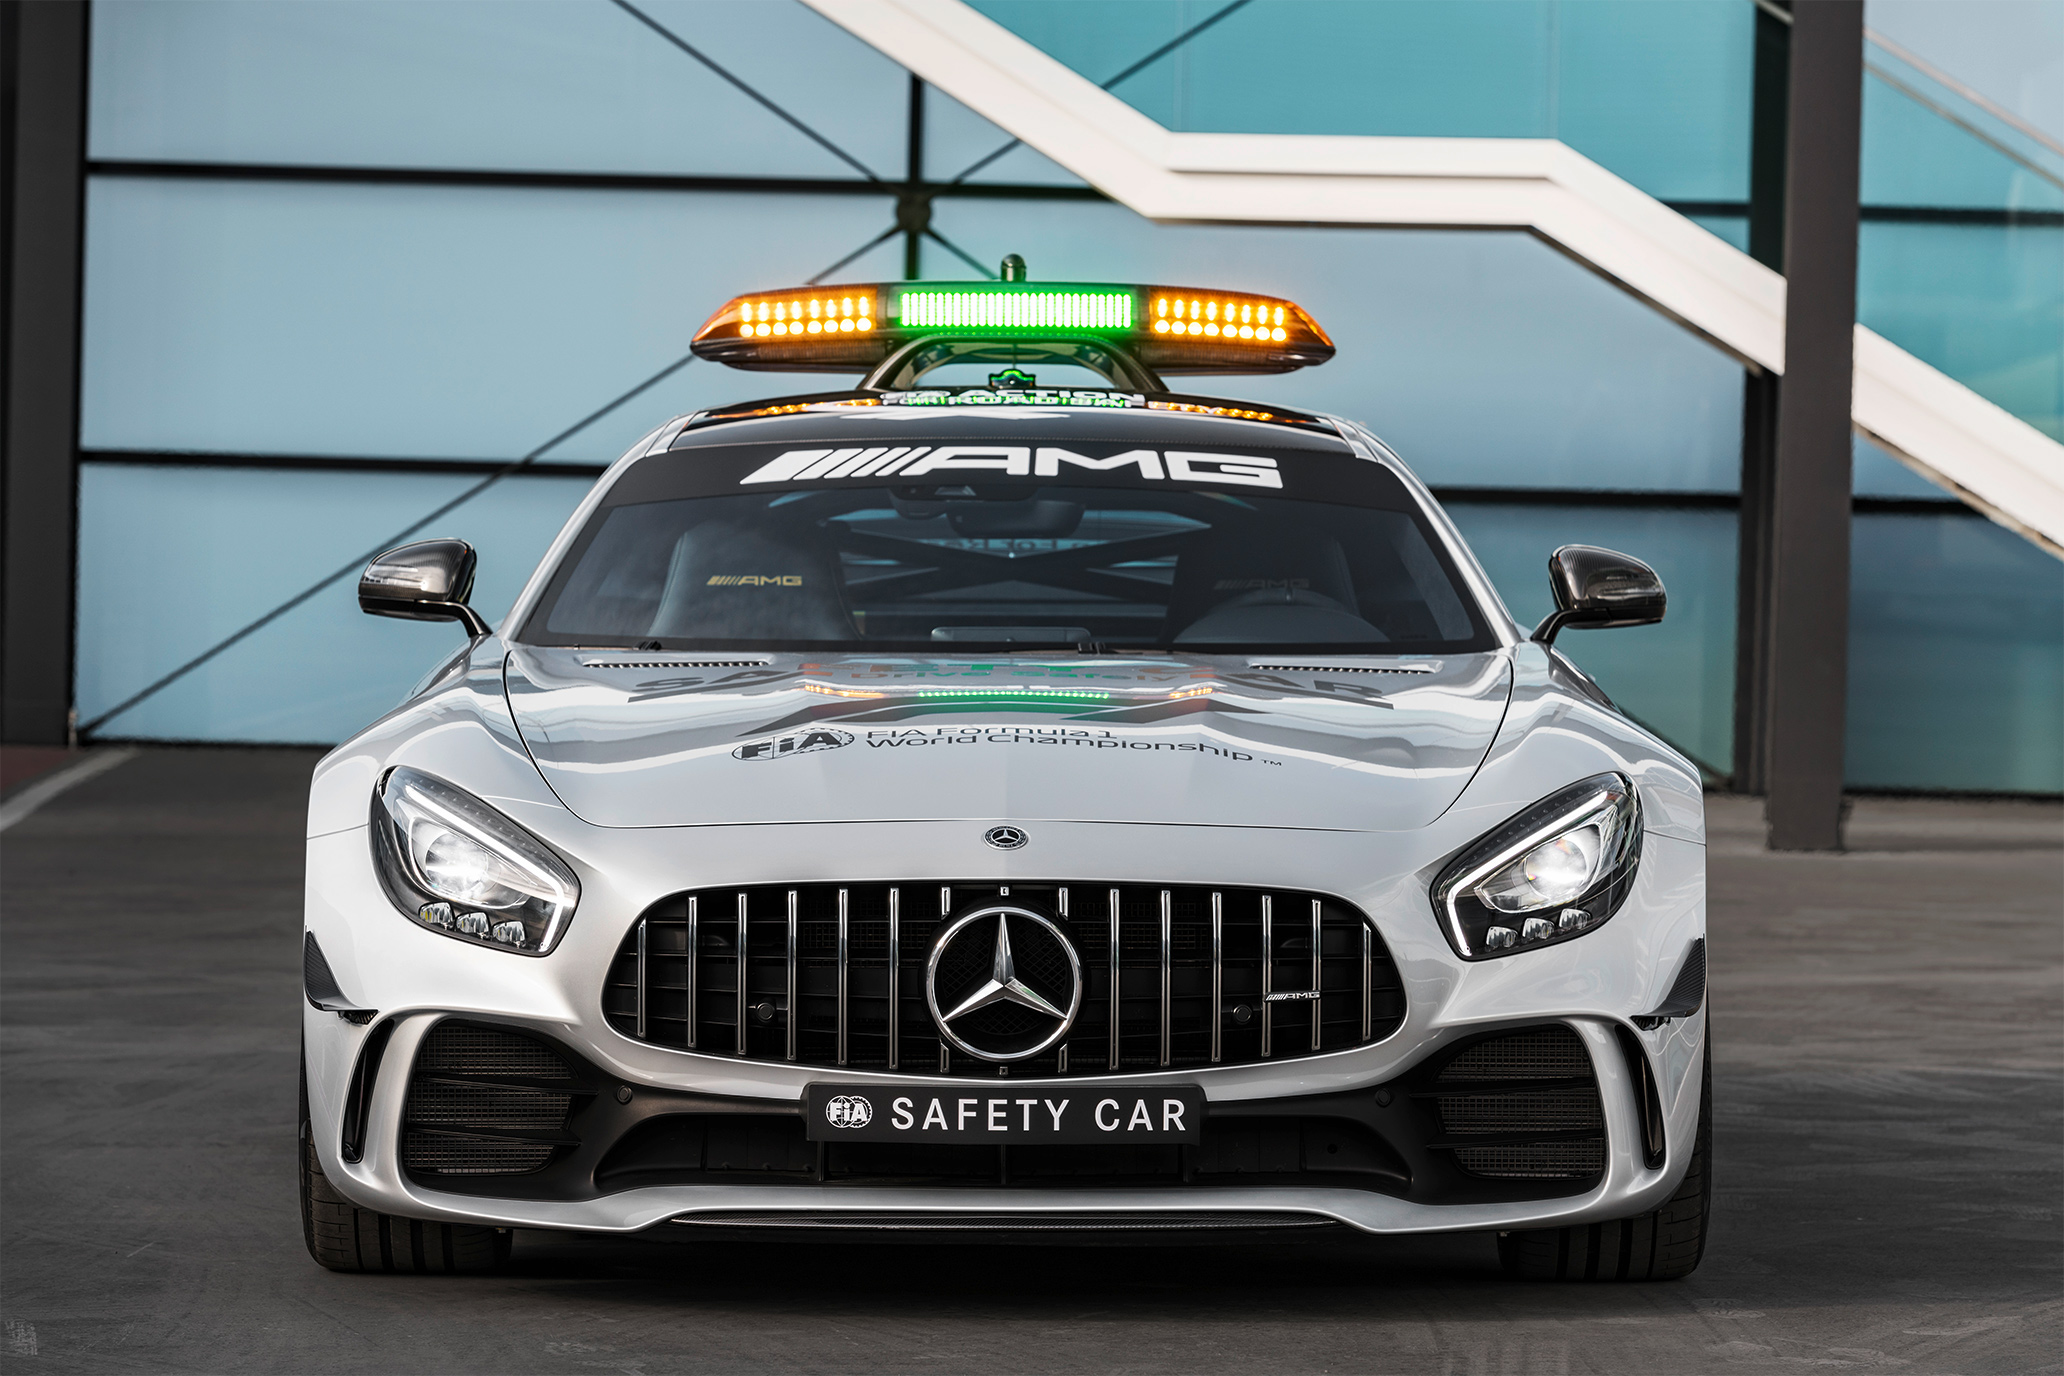 TrackWorthy - 2018 Mercedes-AMG GT R Formula 1 Safety Car (18)